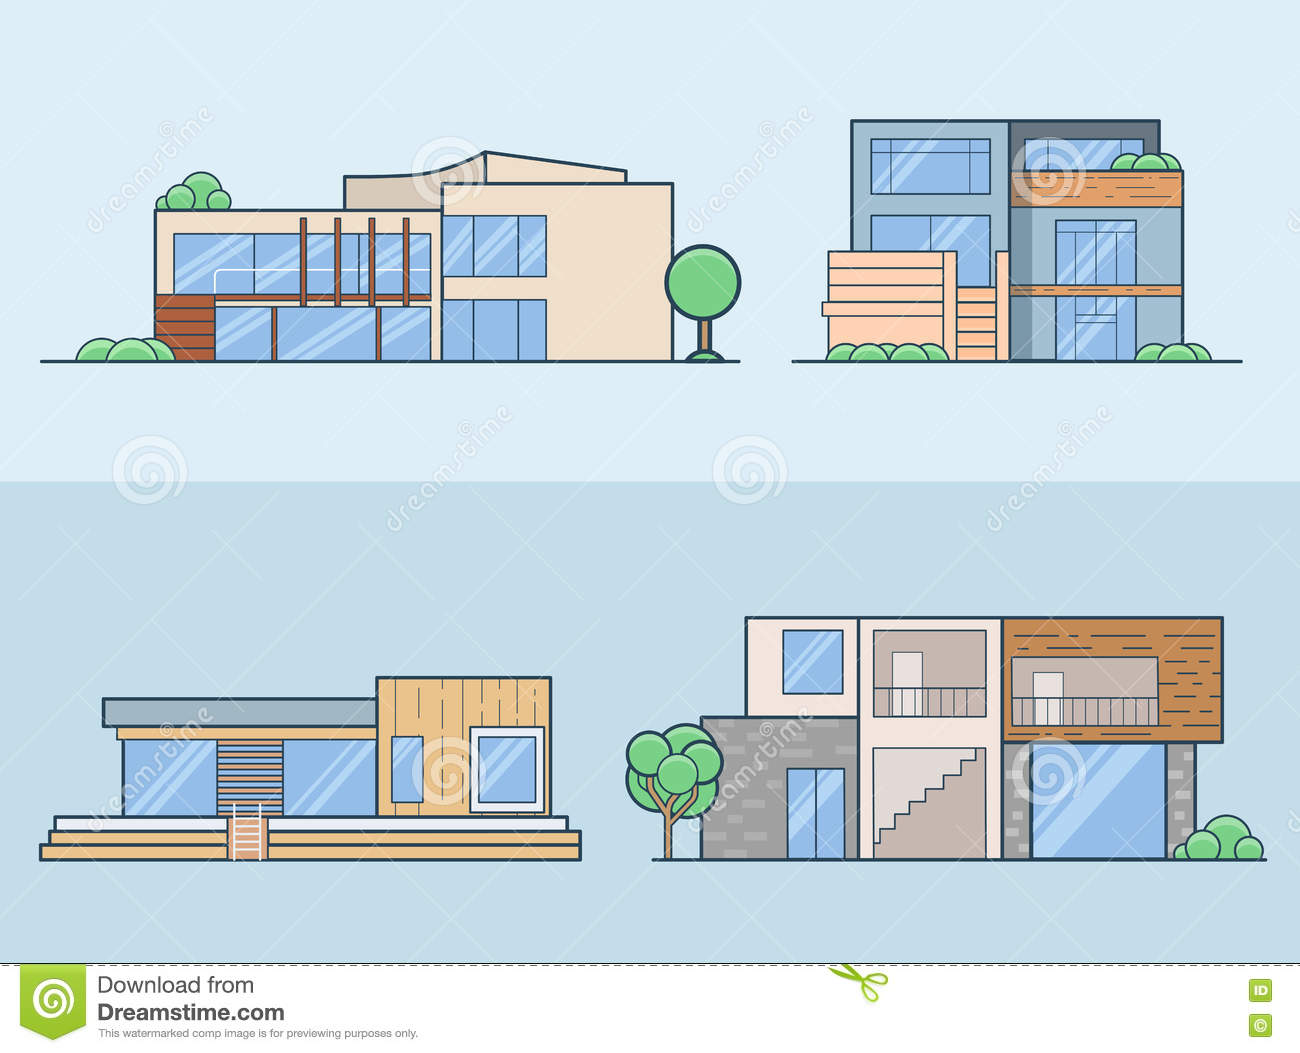 House models vector design vector illustration for Building houses with side views